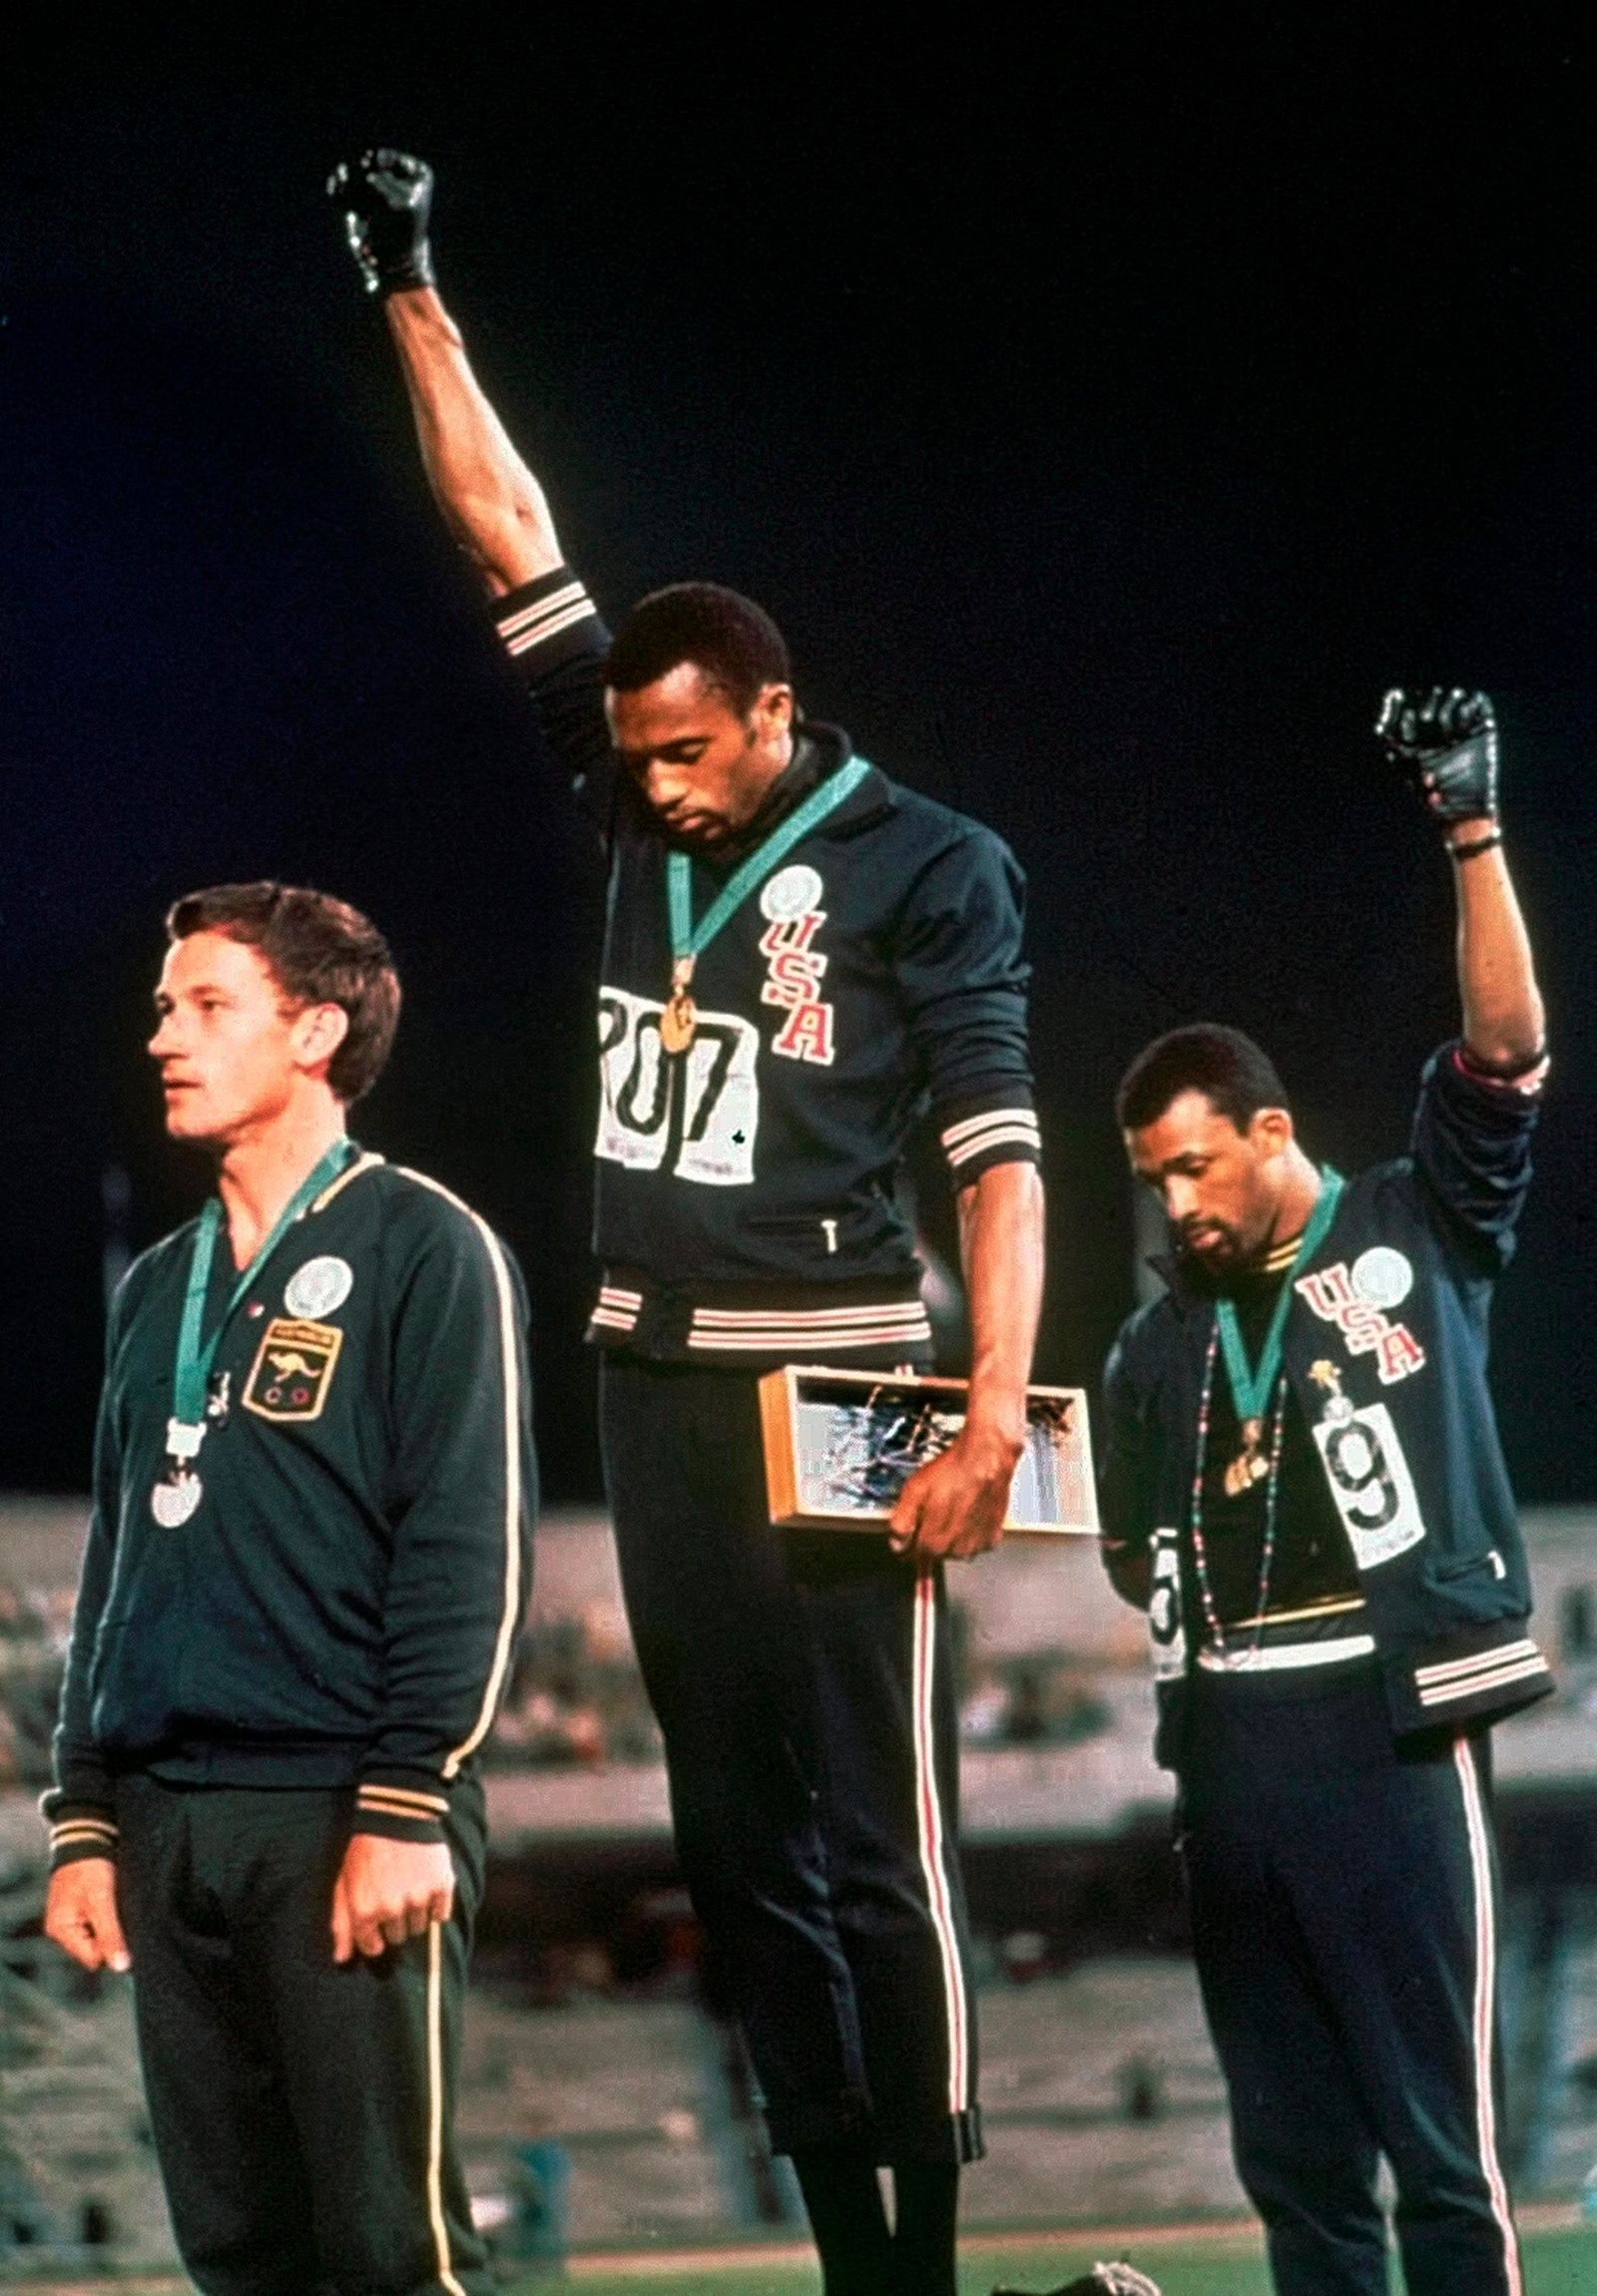 FILE - In this Oct. 16, 1968, file photo, U.S. athletes Tommie Smith, center, and John Carlos stare downward and extend gloved hands skyward in a Black power salute after Smith received the gold and Carlos the bronze for the 200 meter run at the Summer Olympic Games in Mexico City. (AP Photo, File)